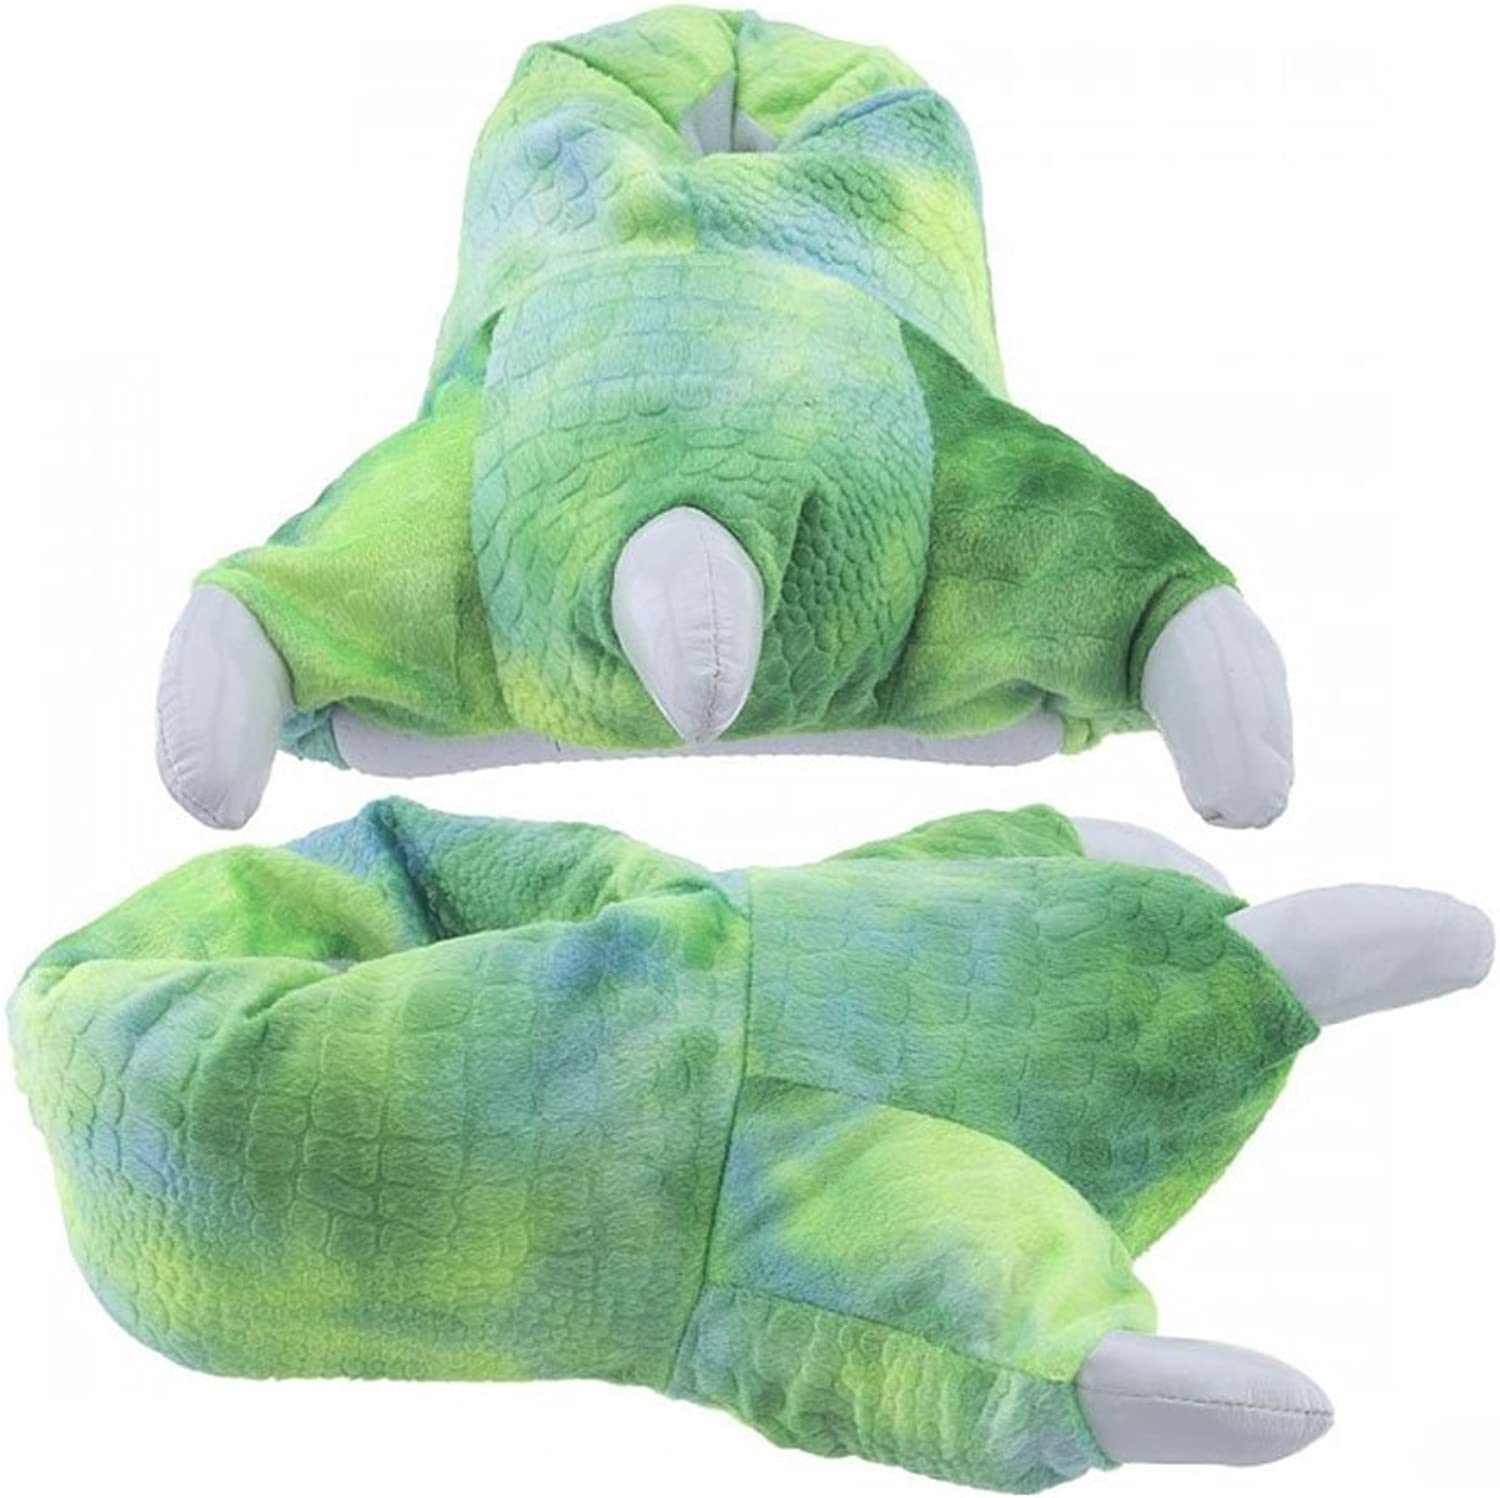 Wishpets Dinosaur Claw Slippers w White Claws (Green)